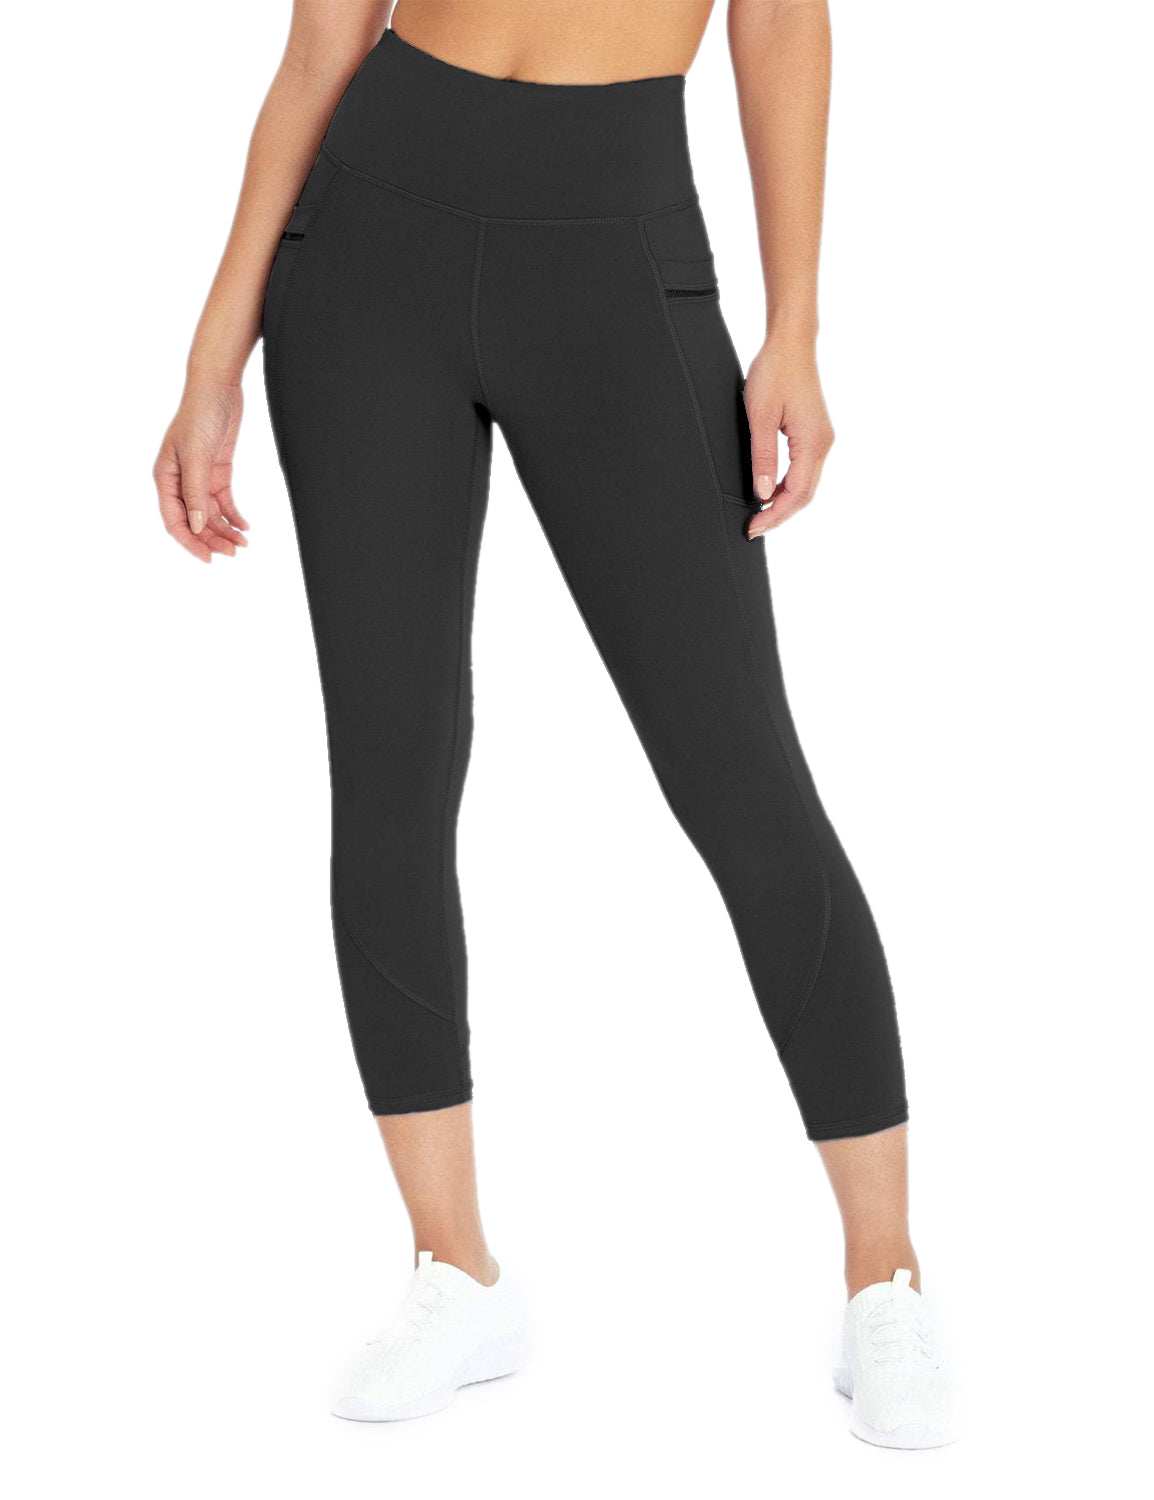 Blooming Jelly_Stretchy High Waisted Capri Leggings_Black_255022_02_Women Athletic High Elascity Workout_Bottoms_Leggings